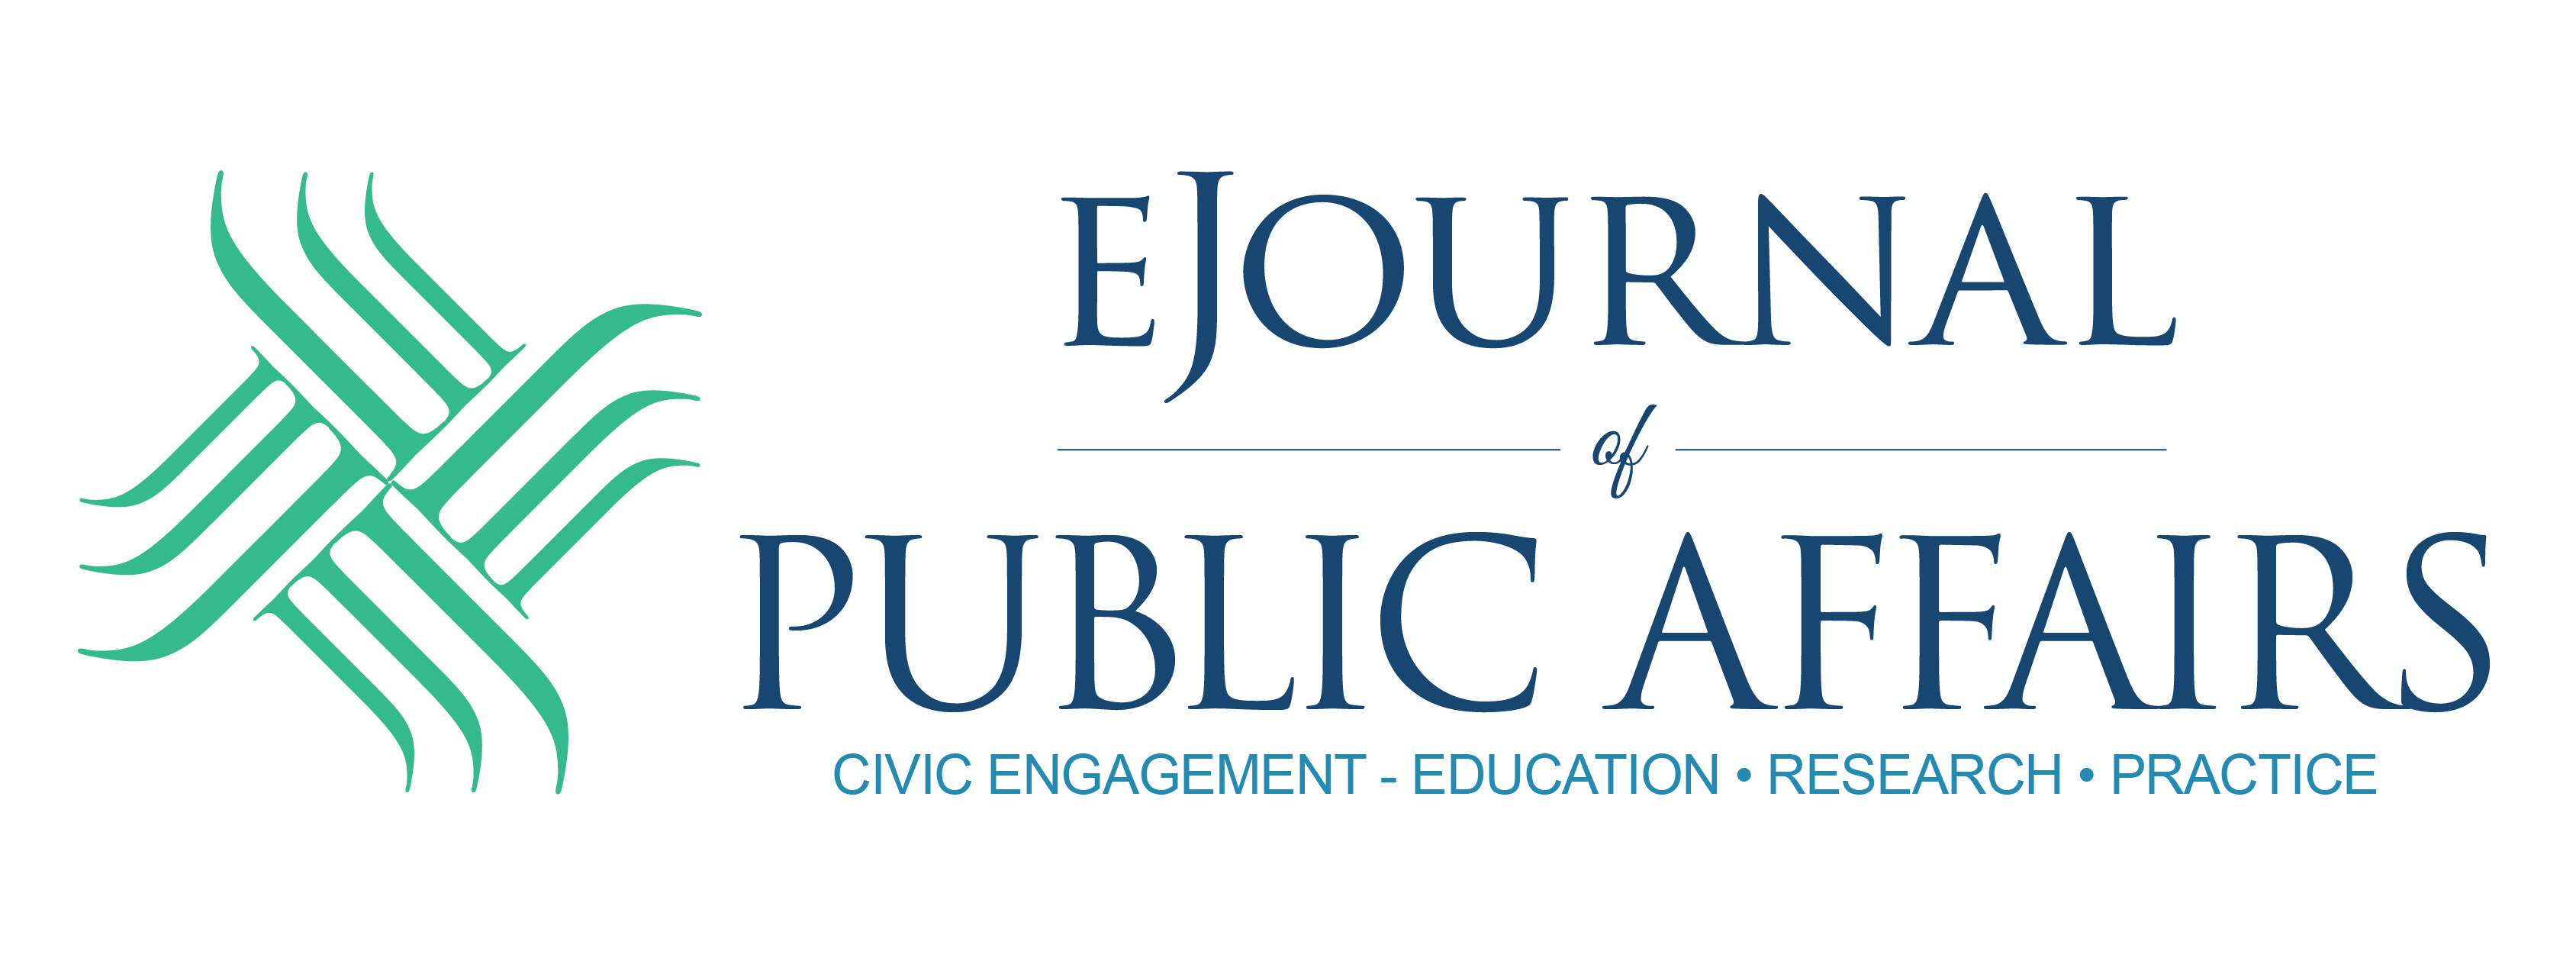 Image of the eJournal of Public Affairs Logo